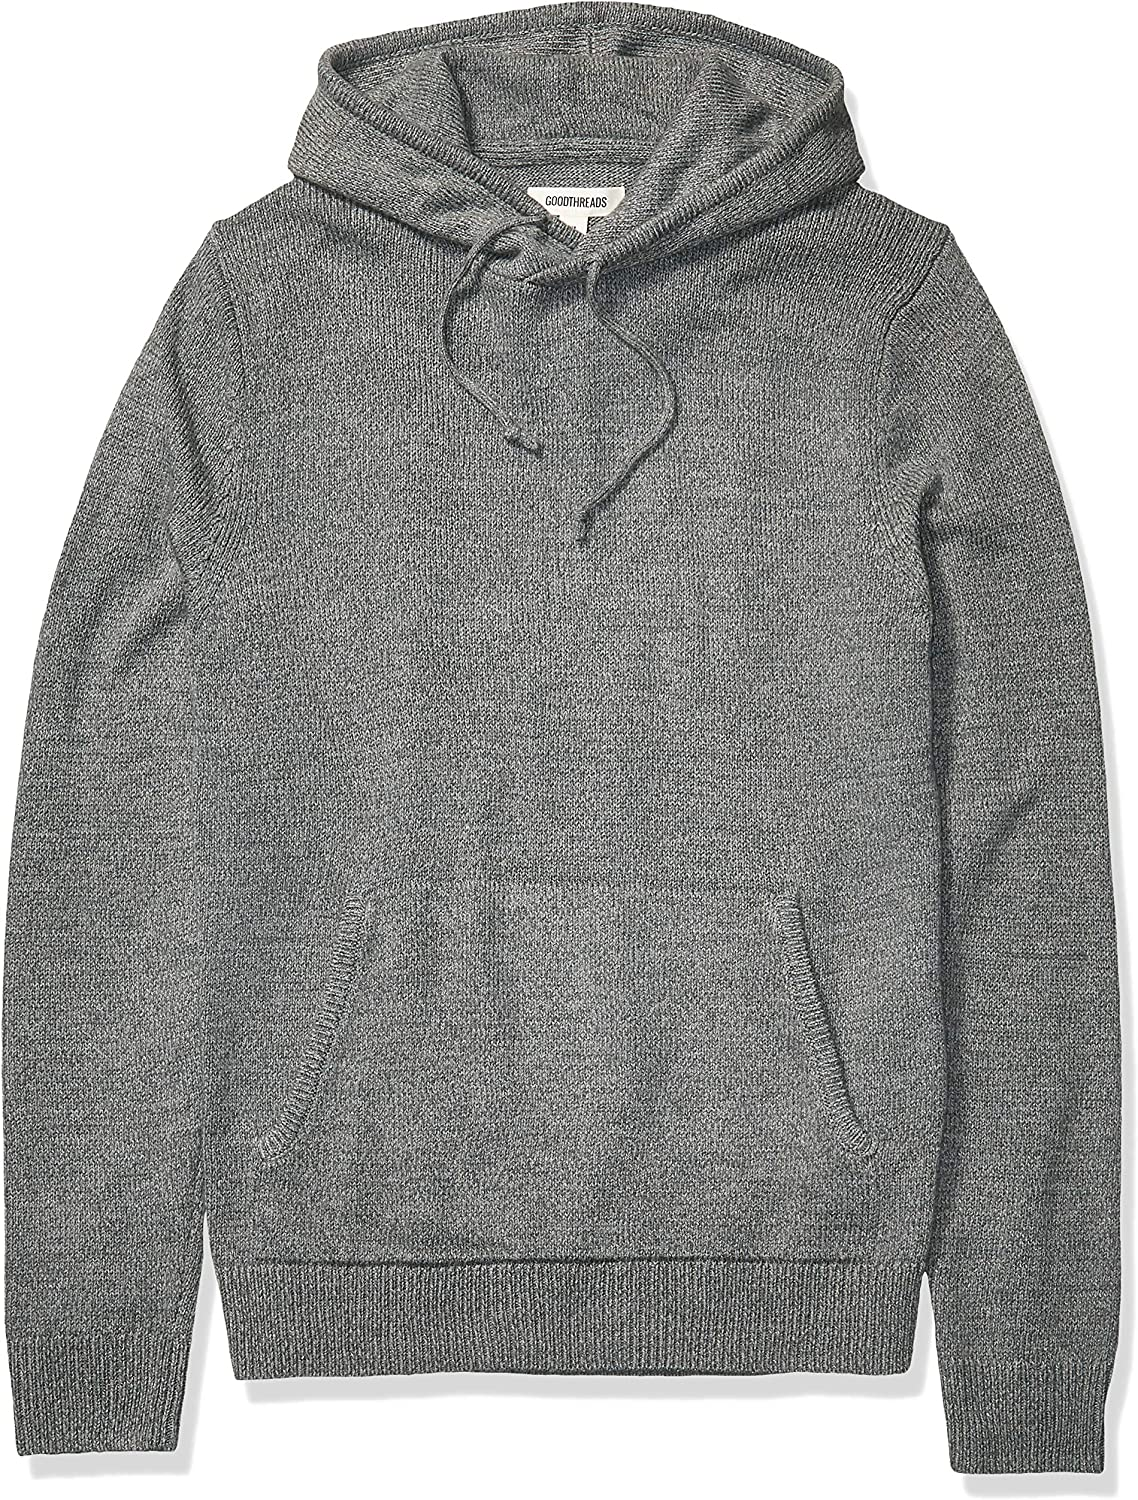 Amazon Brand - Goodthreads Men's Supersoft Marled Pullover Hoodie Sweater